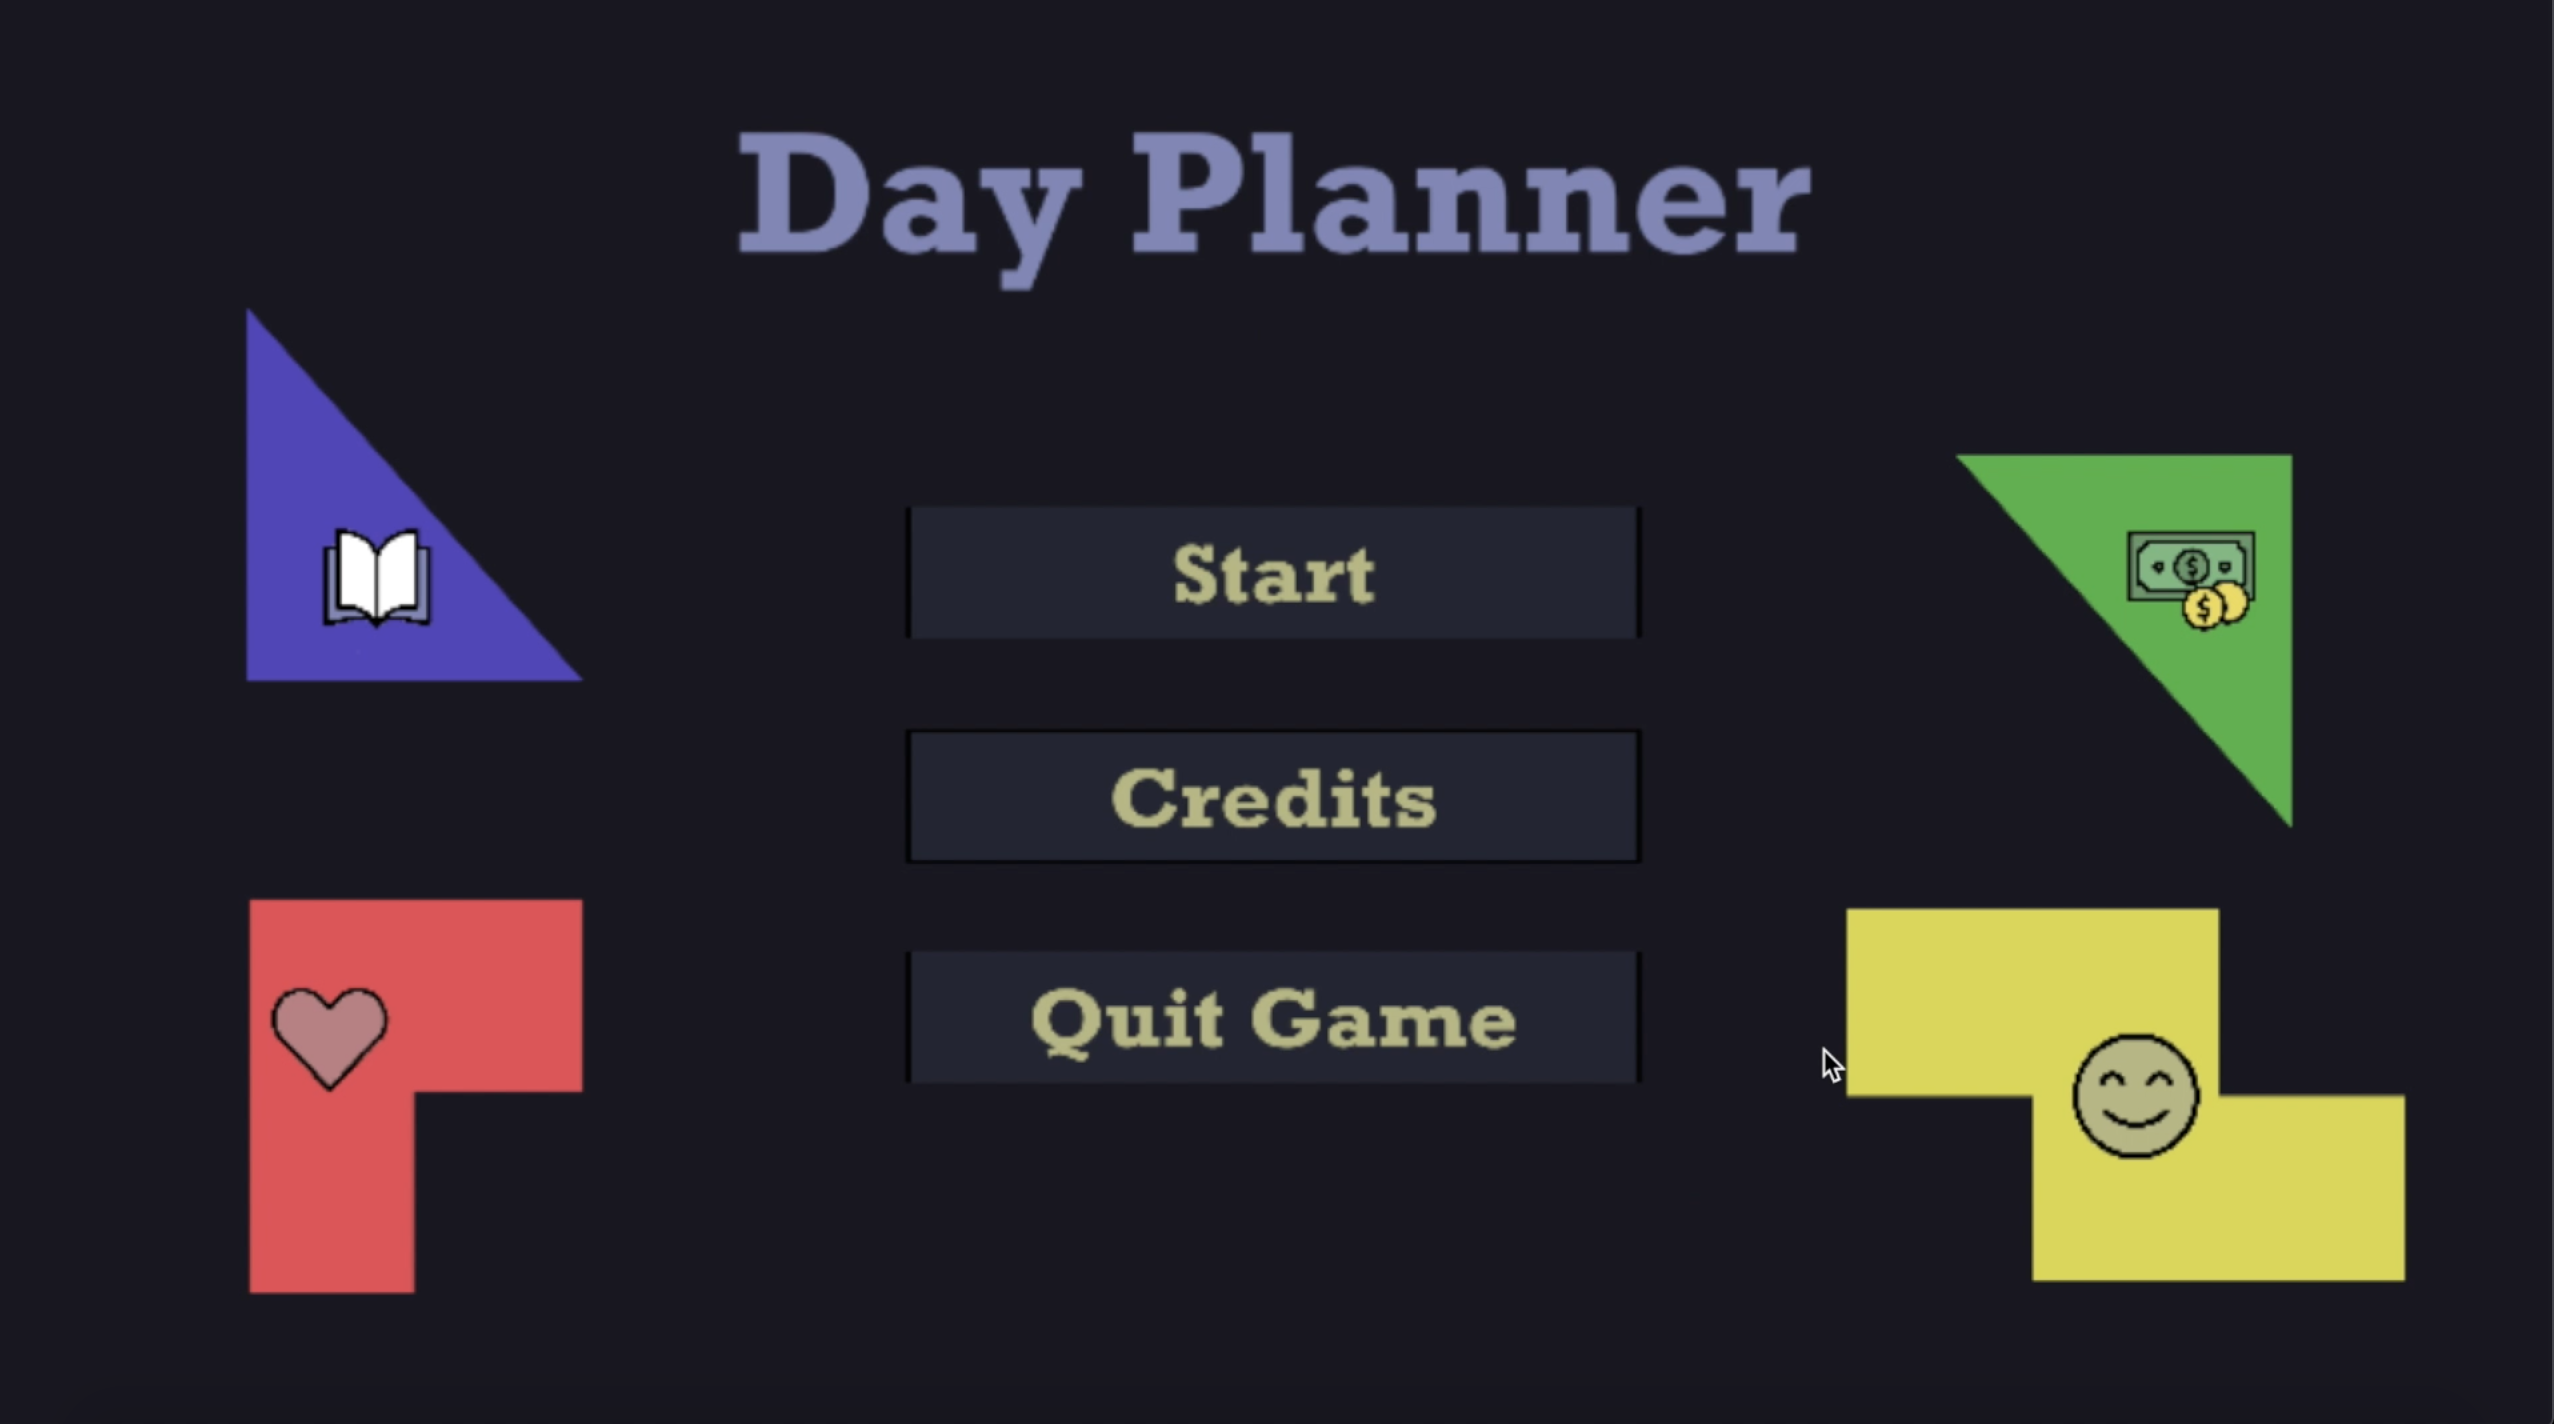 Day Planner Prototype